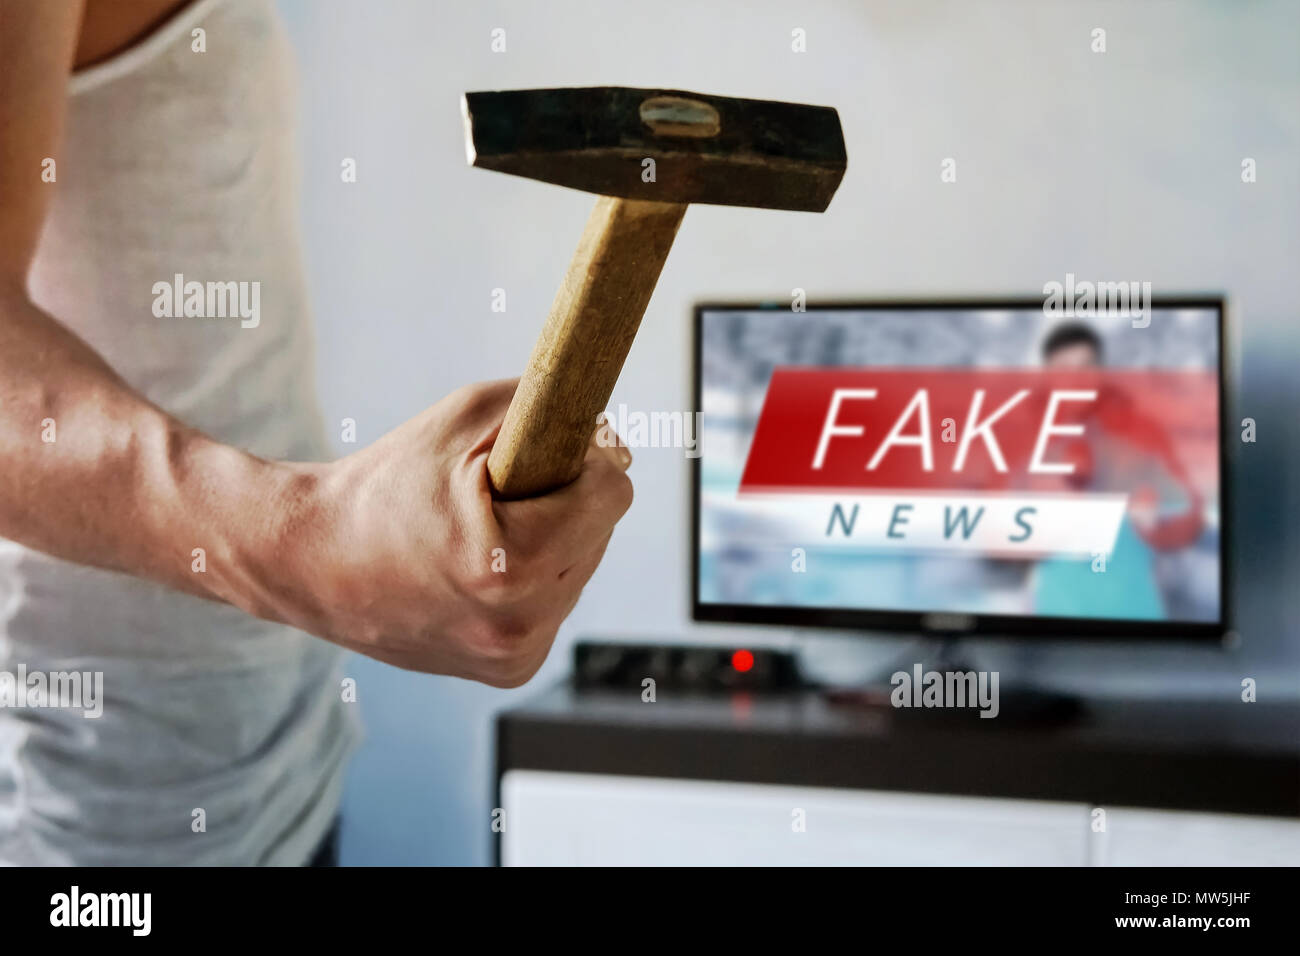 man wants to break the TV. guy swung a hammer at the screen. . Fake news on the TV screen, HOAX concept. News report with false news. Truth misreprese Stock Photo